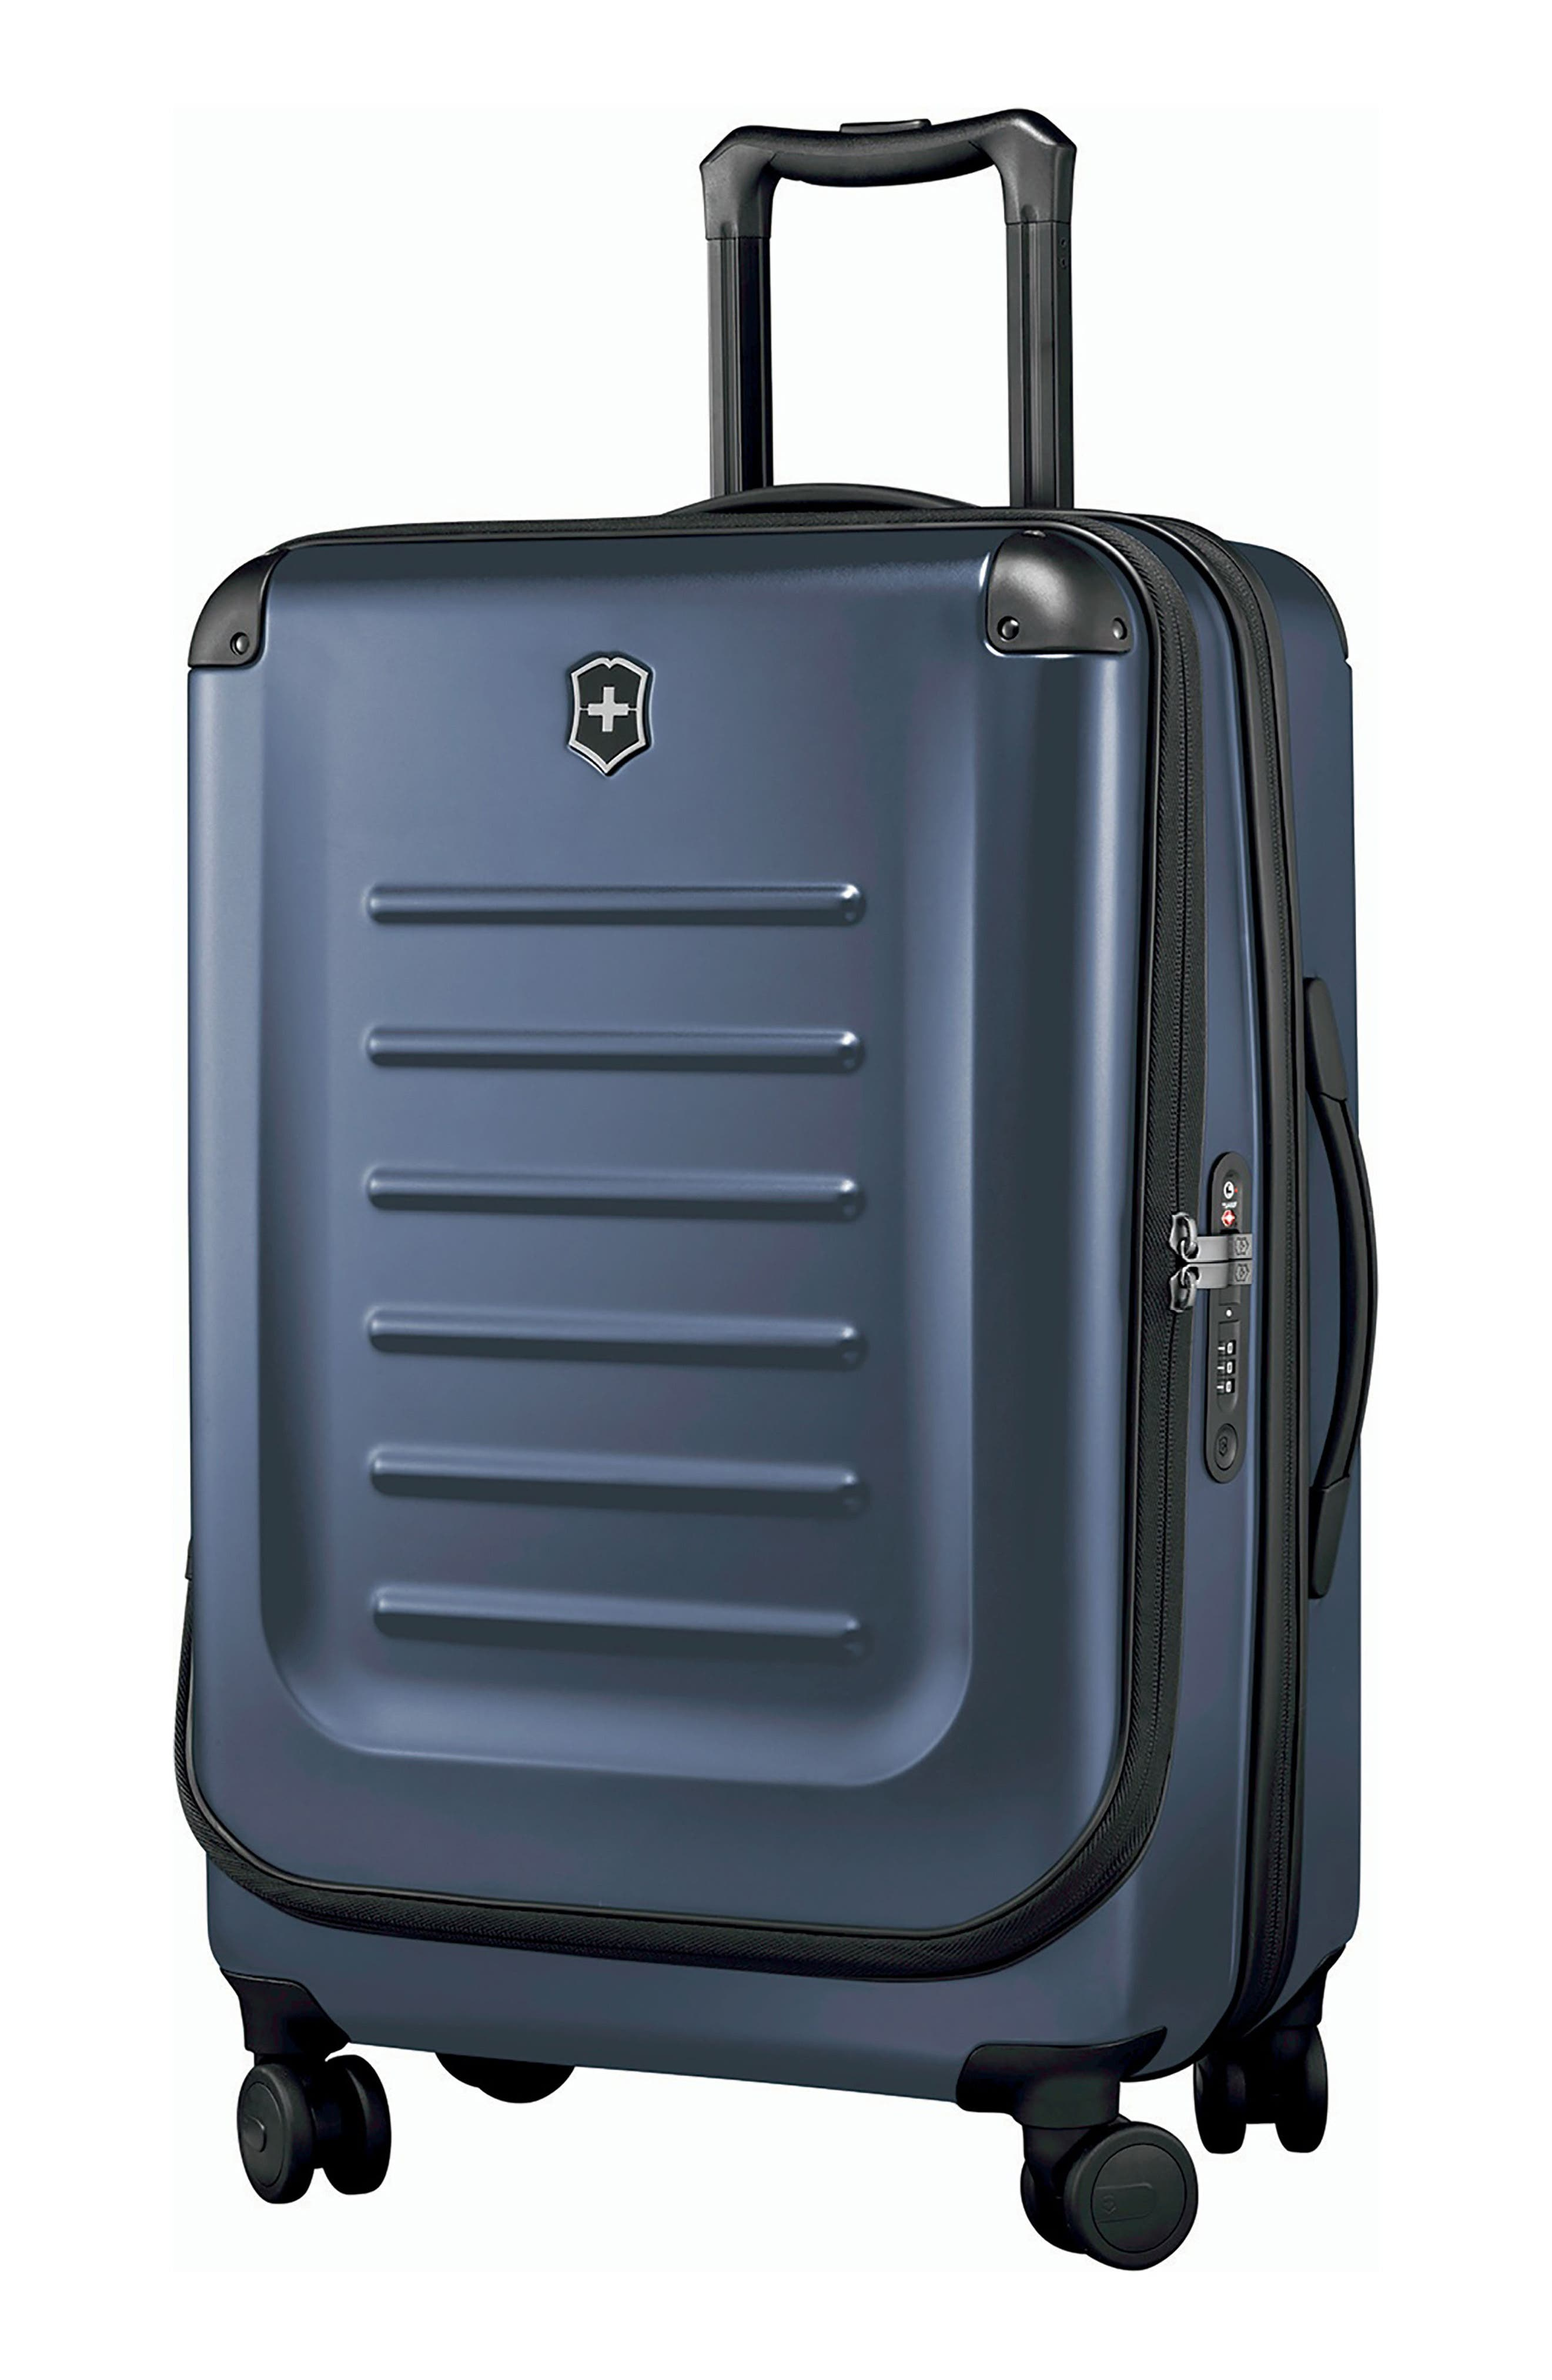 Main Image - Victorinox Swiss Army® Spectra 2.0 27 Inch Hard Sided Rolling Travel Suitcase